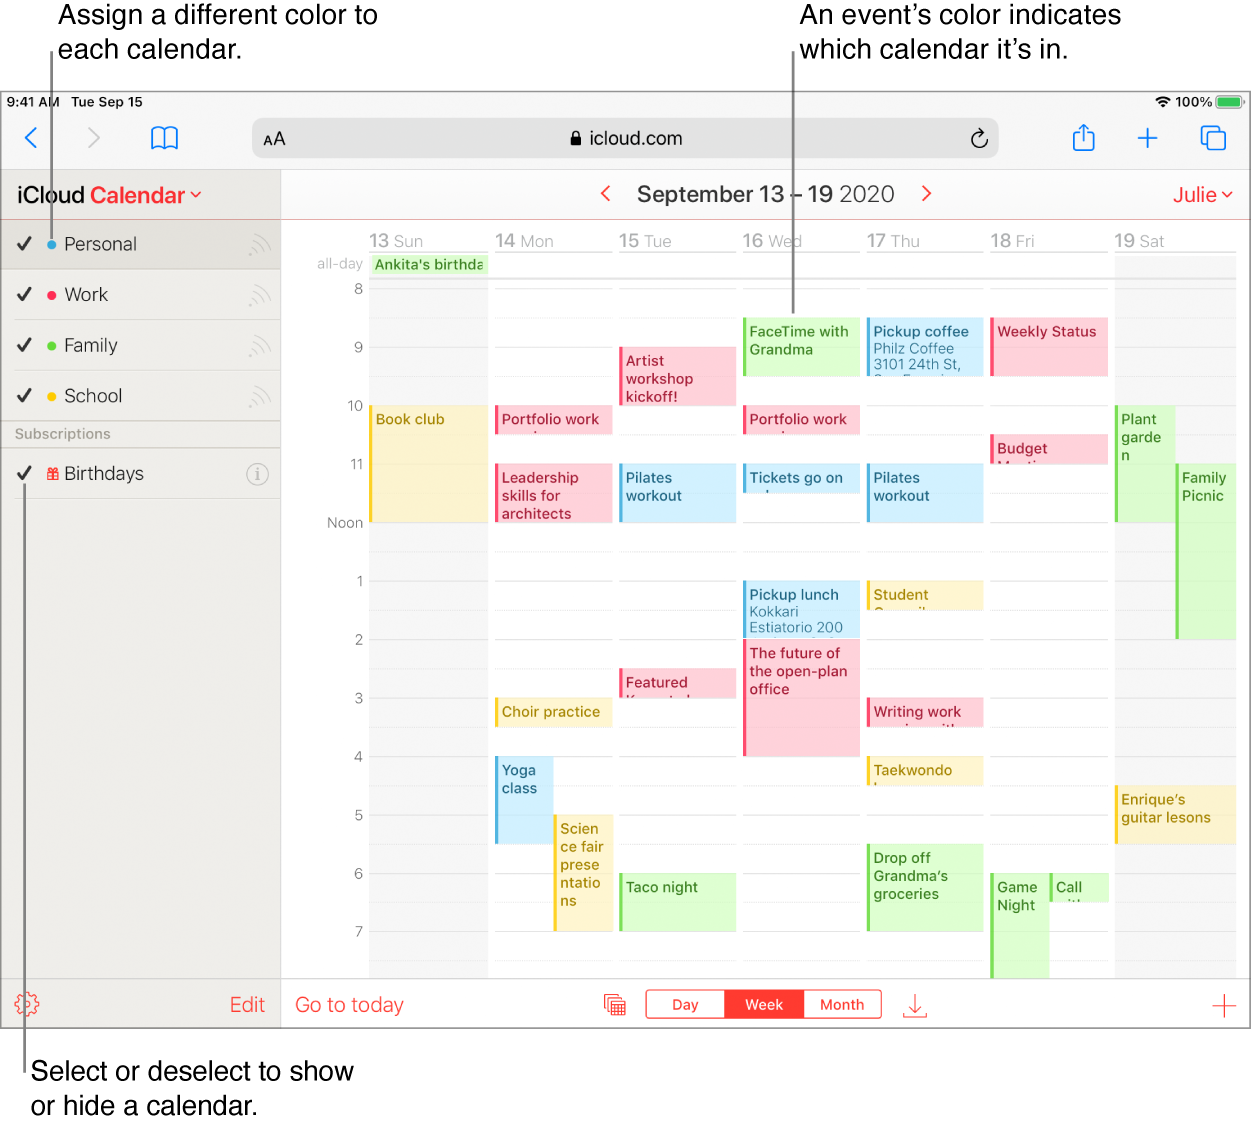 The iCloud Calendar window, with several calendars visible. Assign a different colour to each calendar. An event's colour indicates which calendar it's in. Select or deselect a checkmark to show or hide a calendar.